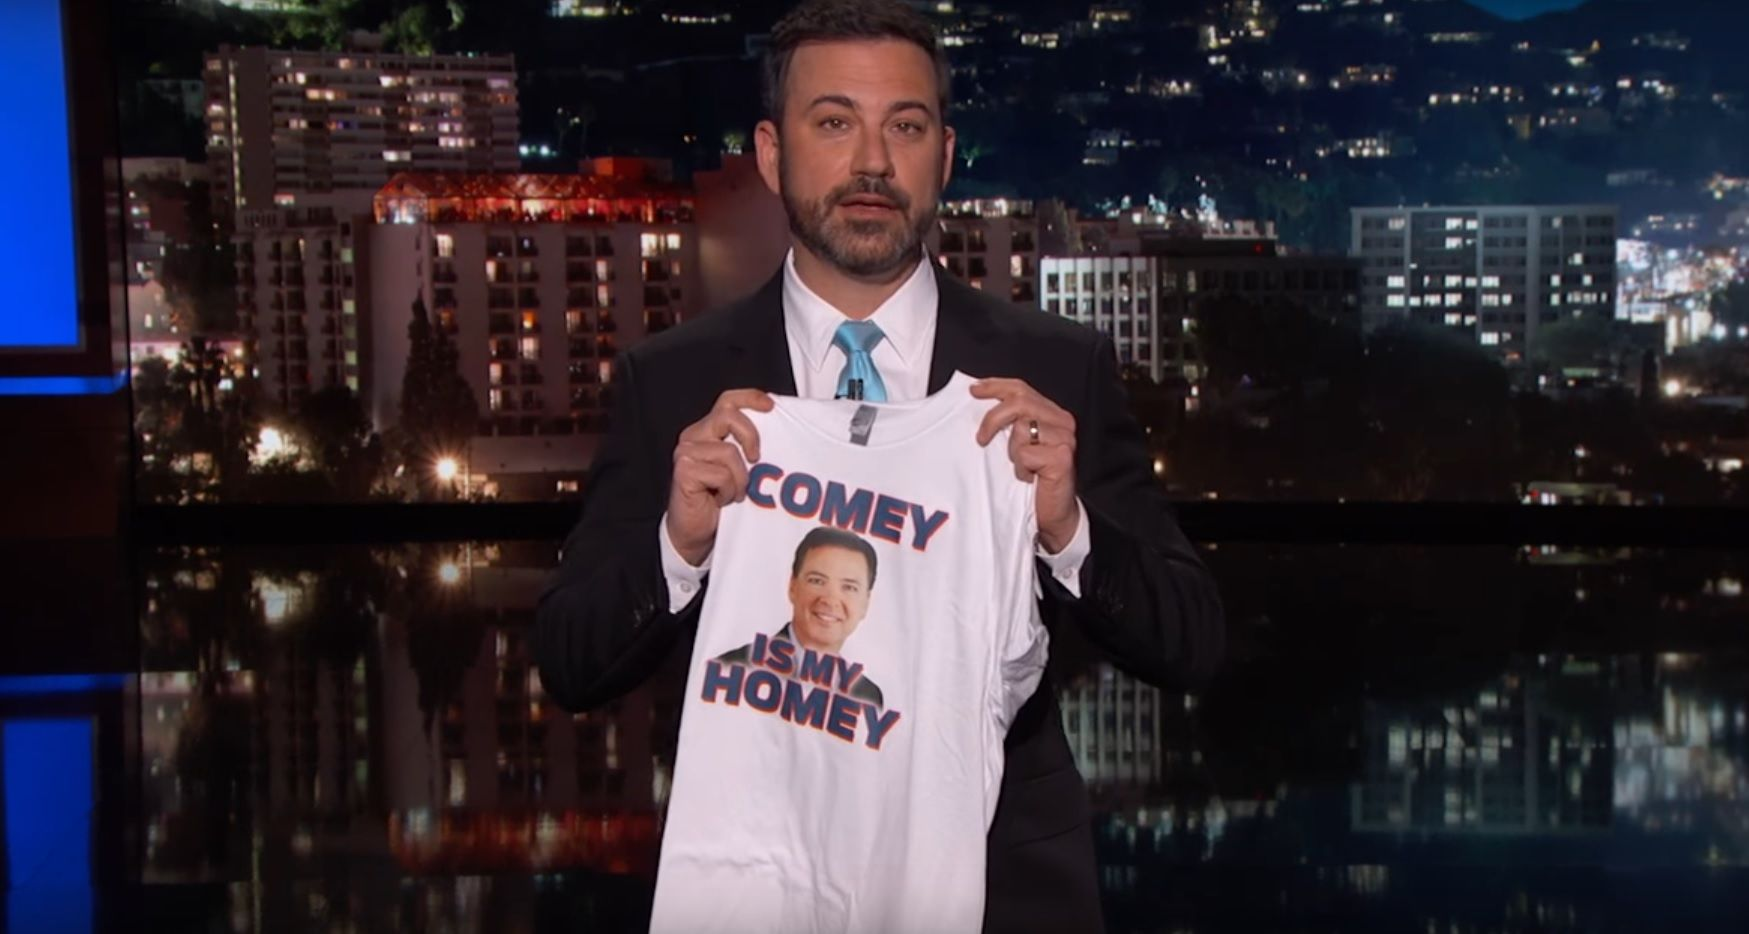 Jimmy Kimmel on Comey